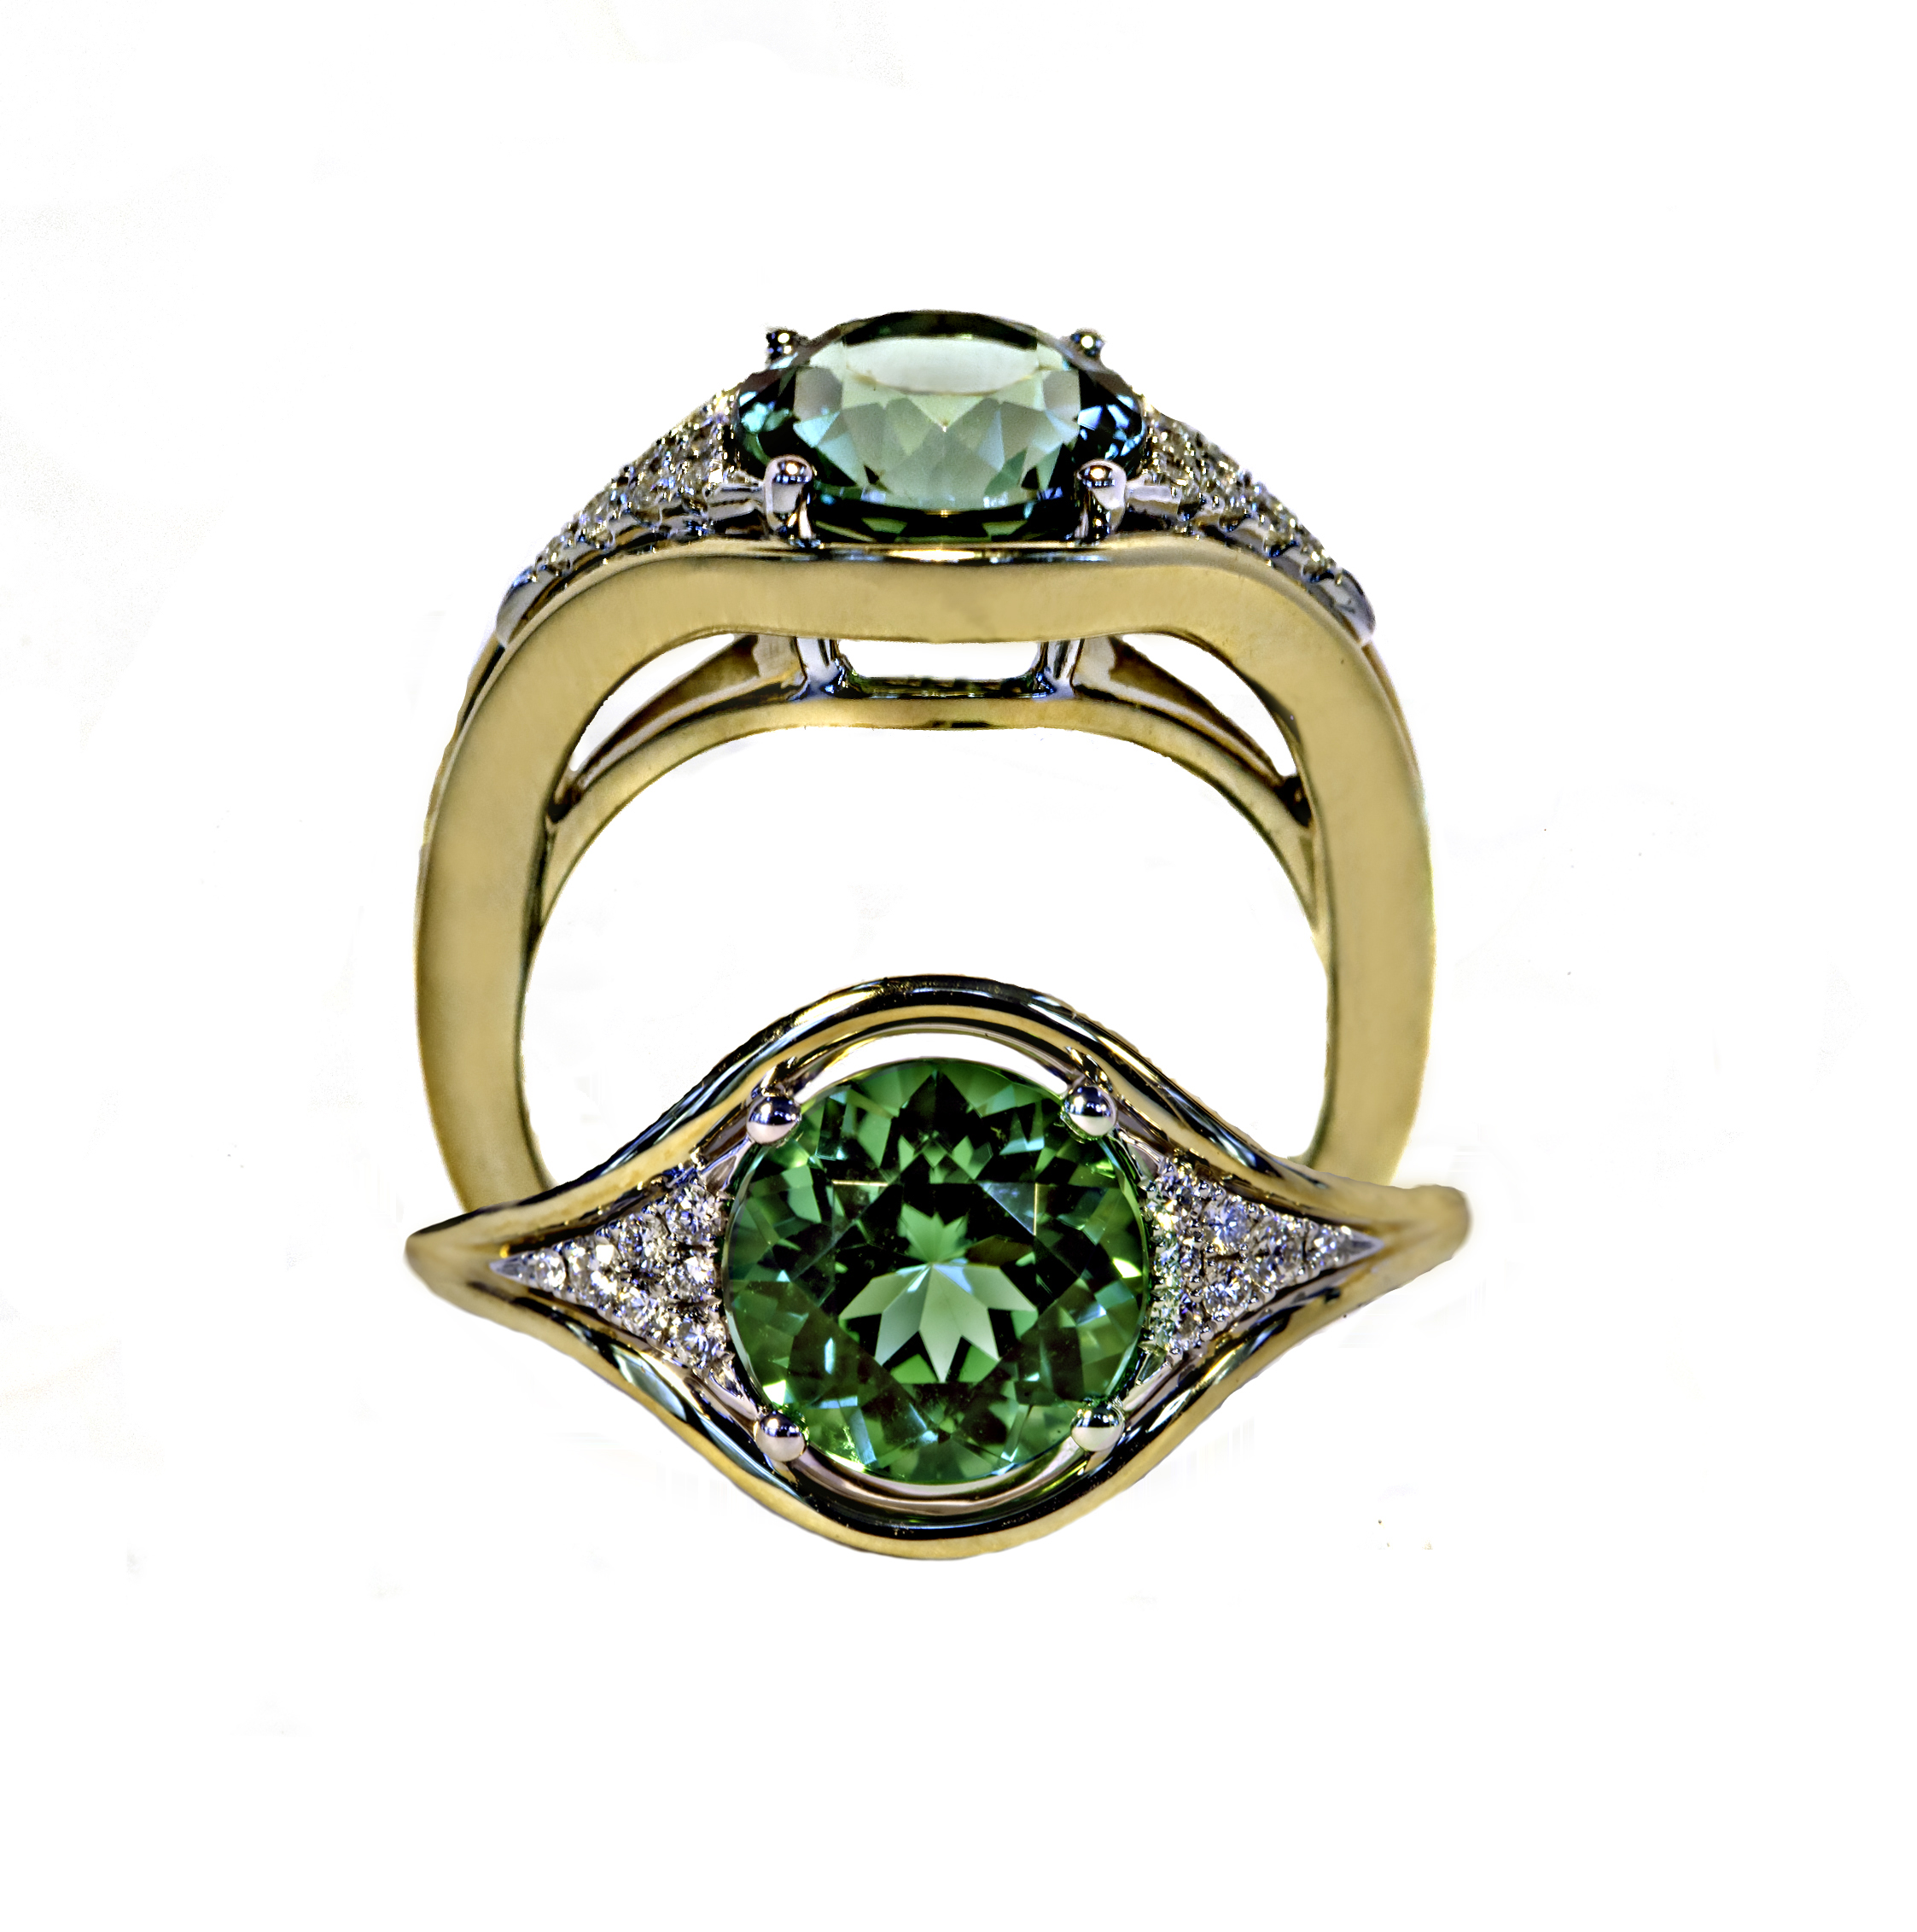 Green tourmaline ring in 18-karat yellow and white gold with diamonds